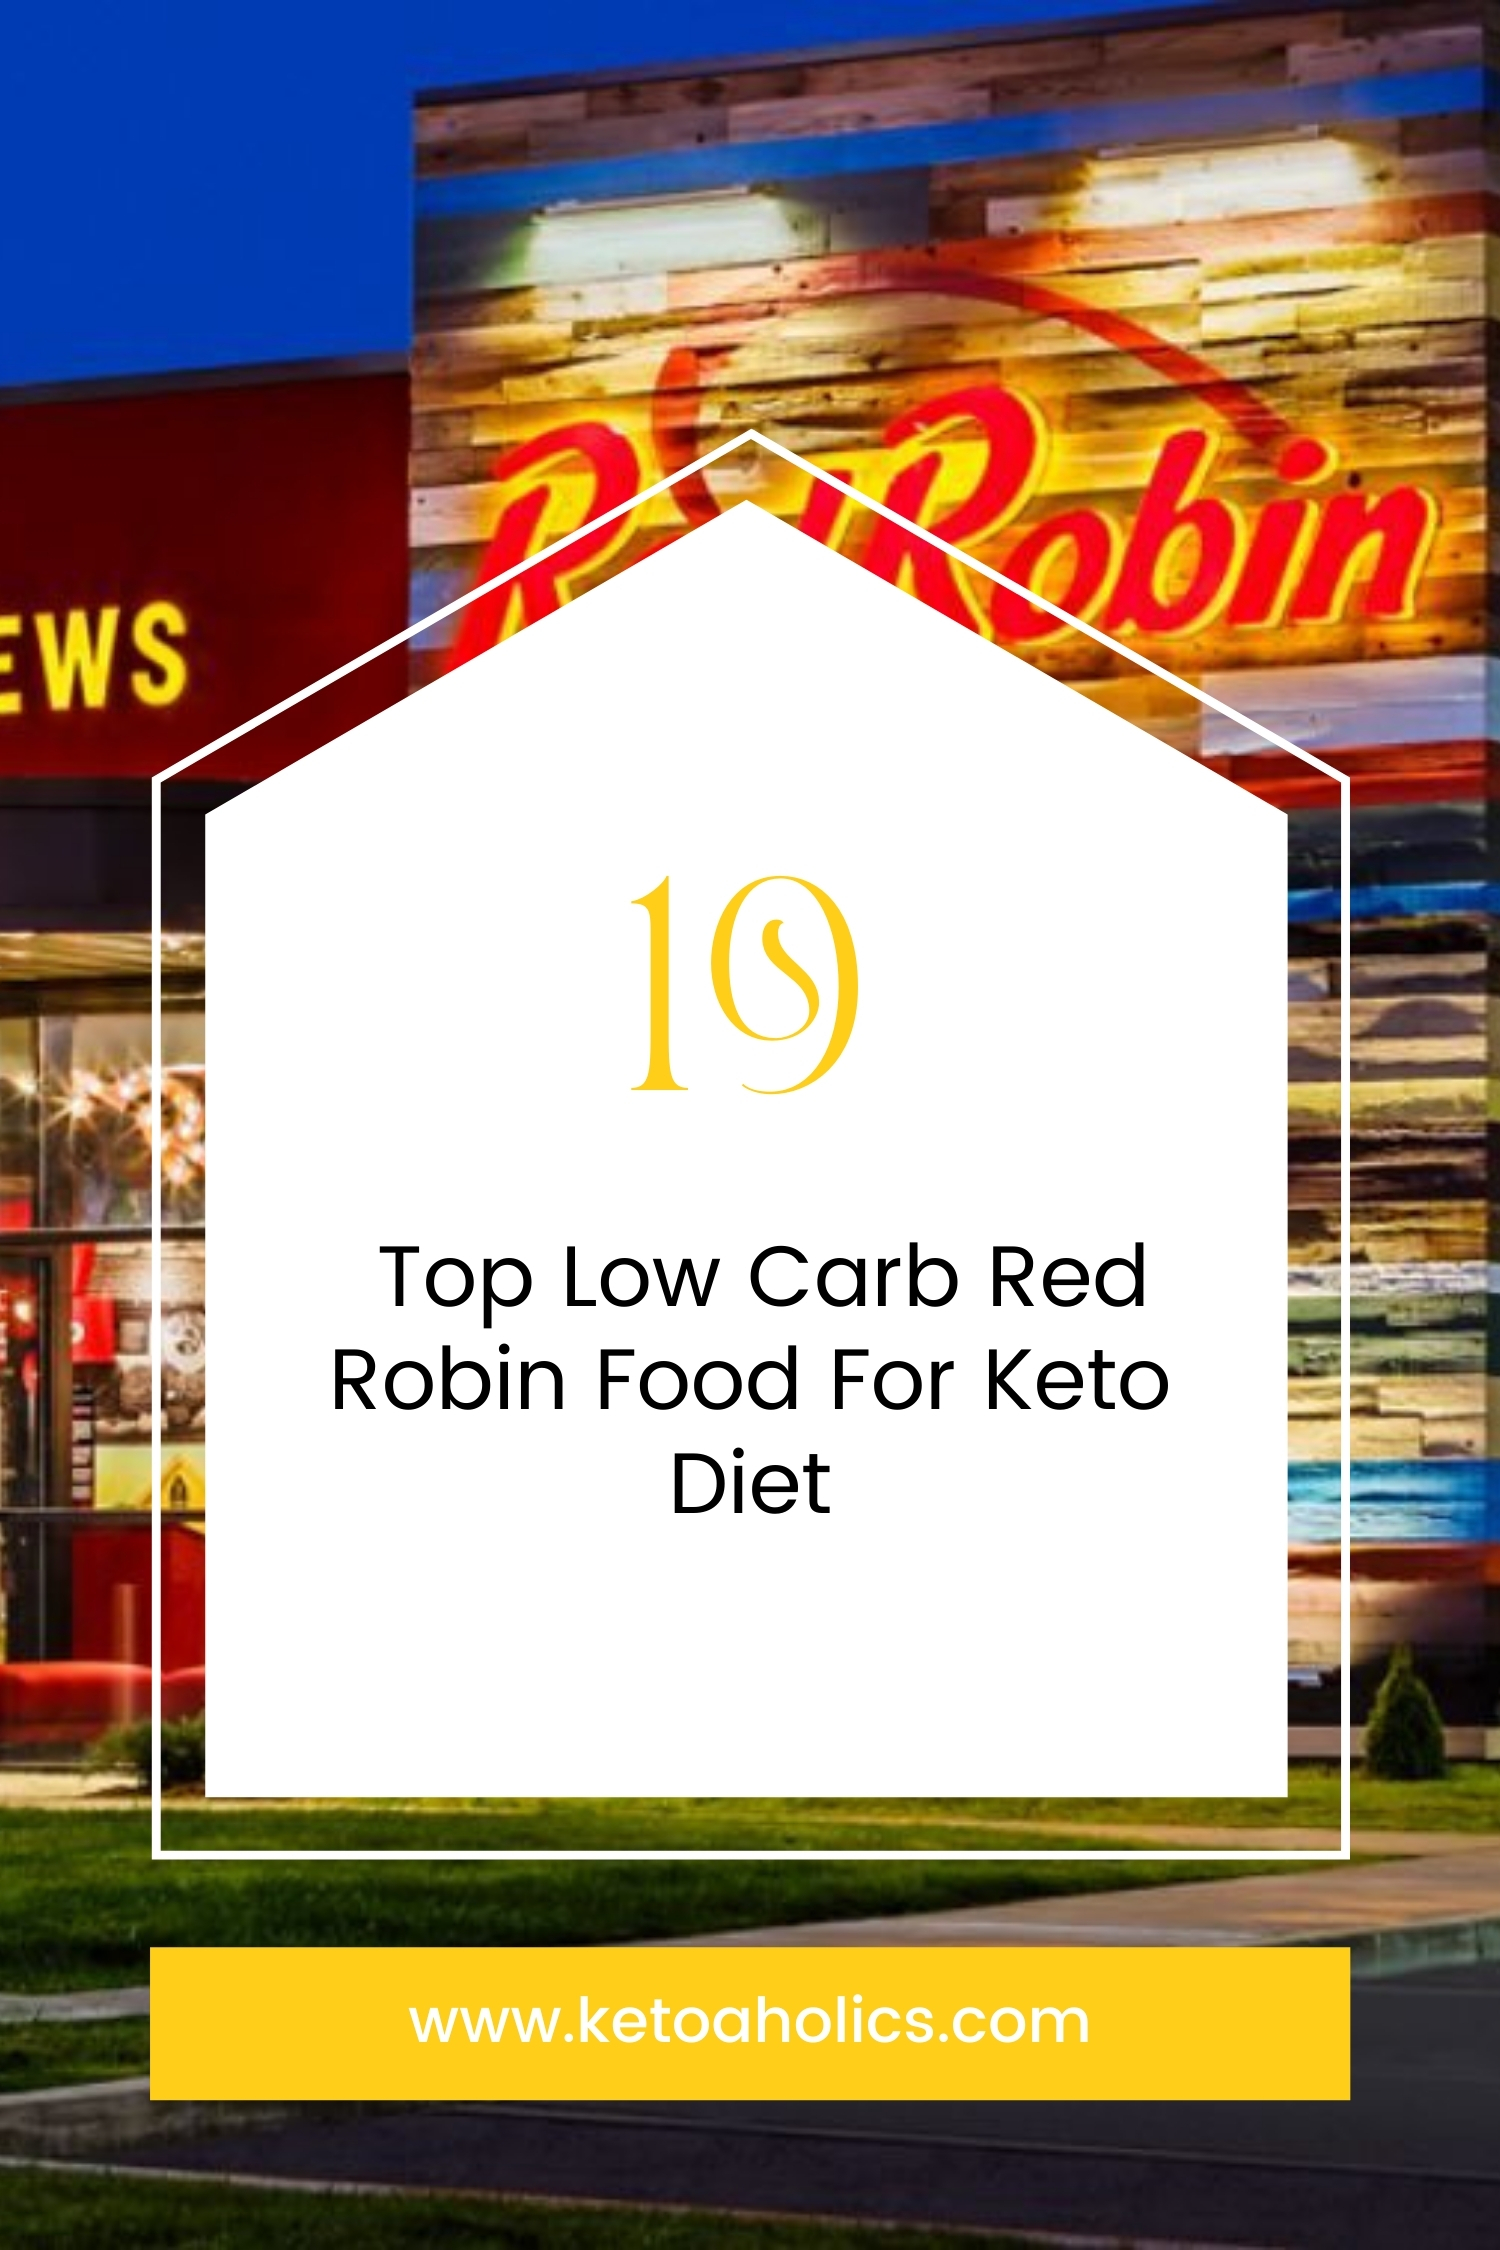 image of 19 Top Low Carb Red Robin Food For Keto Diet